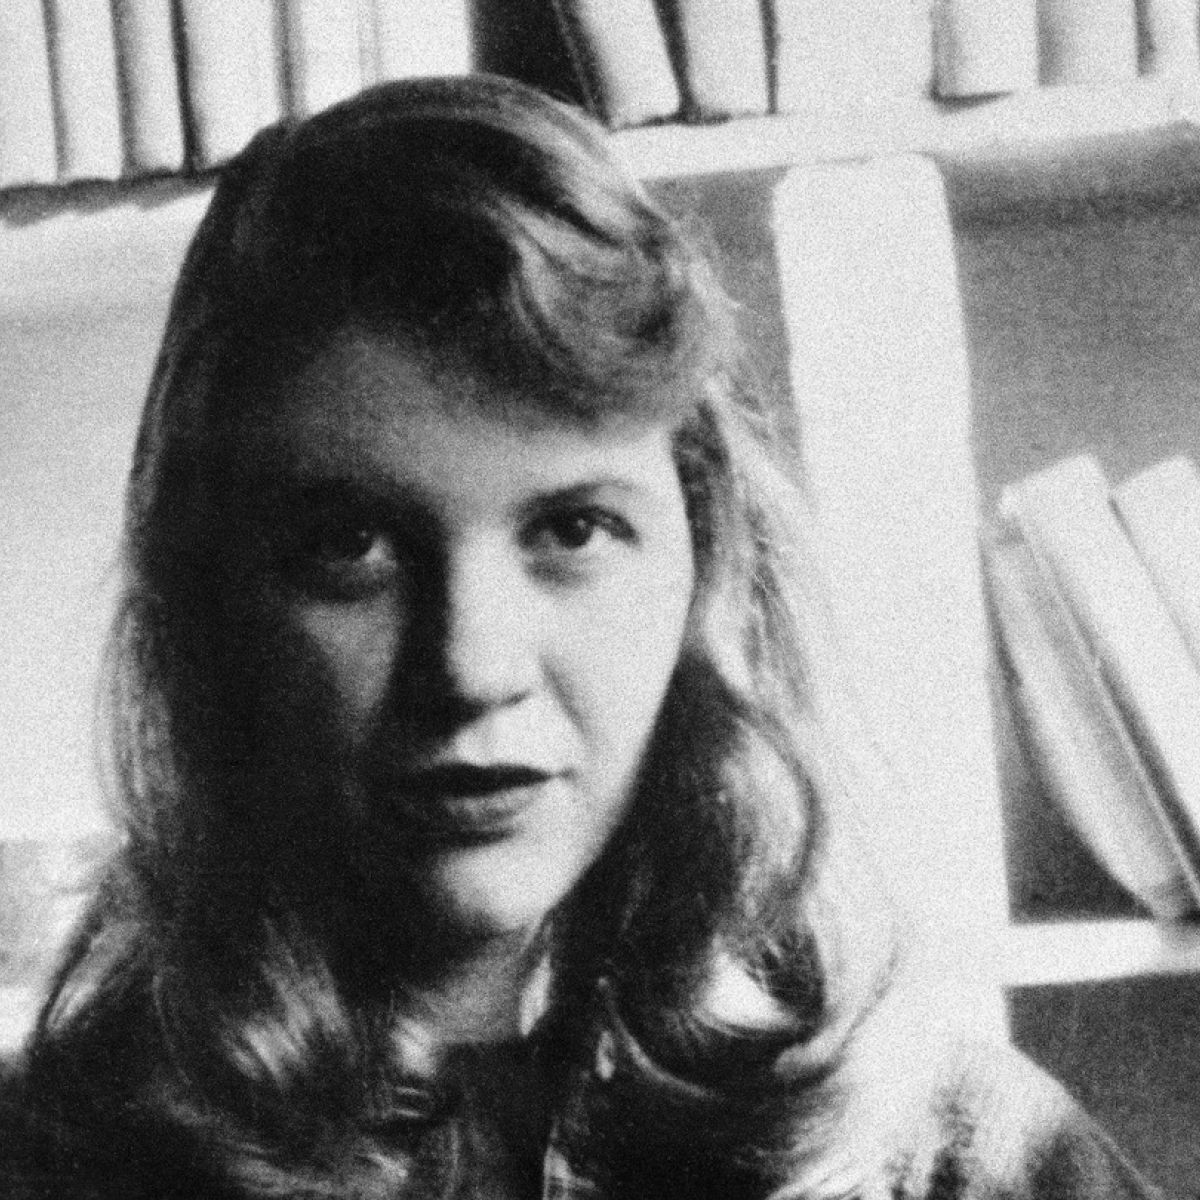 Sylvia Plath letters reveal abuse by Ted Hughes